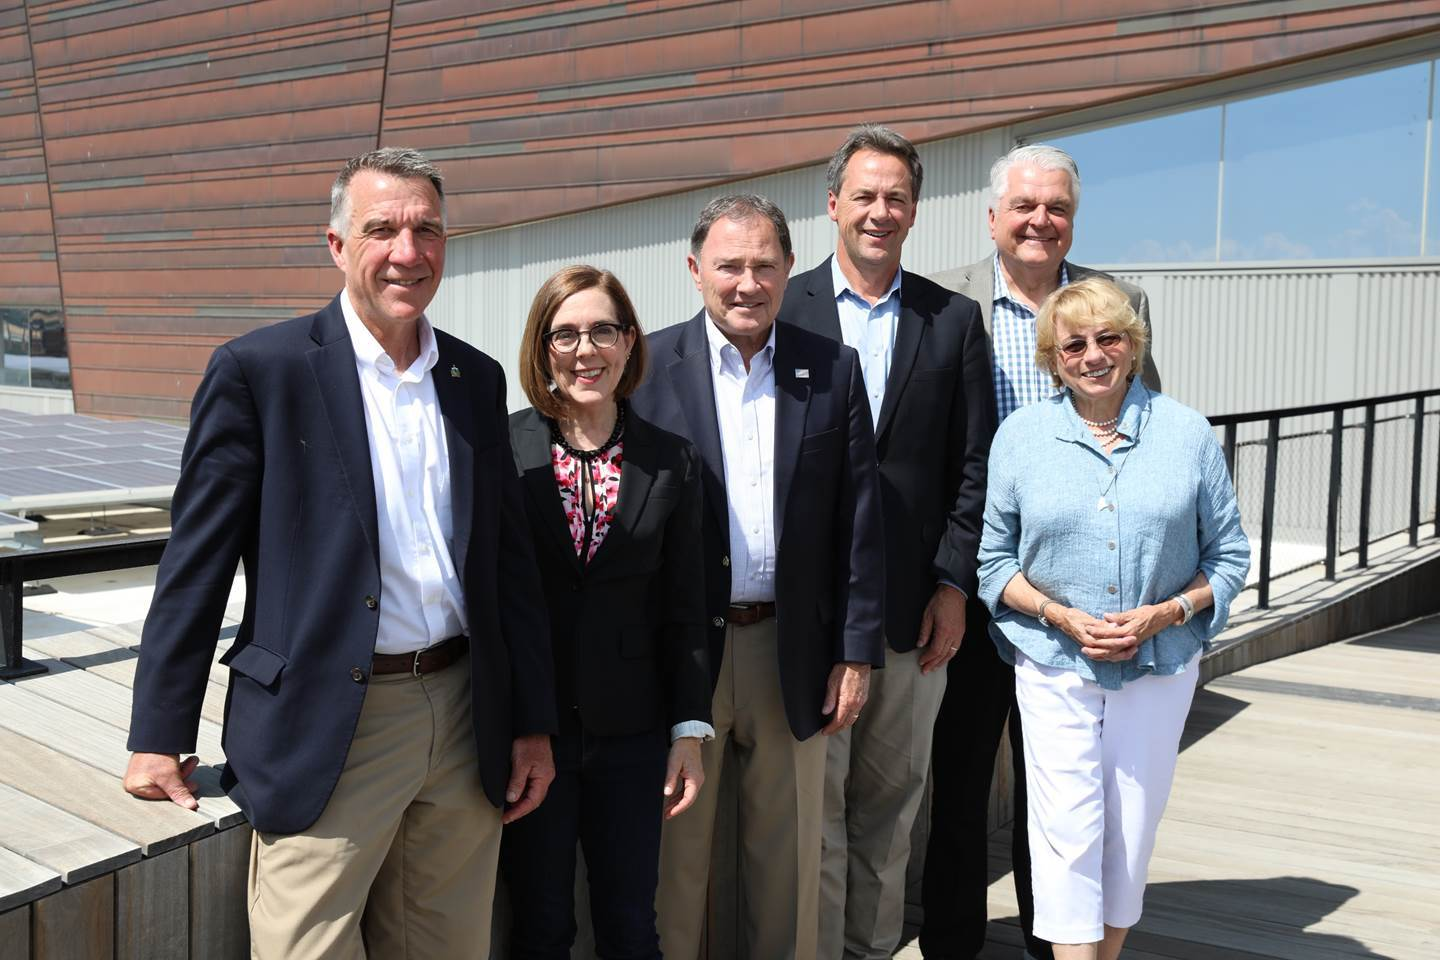 Governors (from left): Phil Scott of Vermont, Kate Brown of Oregon, Gary Herbert of Utah, Steve Sisolak of Nevada and Janet Mills of Maine at the launch event for the National Governors Association Outdoor Recreation Learning Network in Salt Lake City.